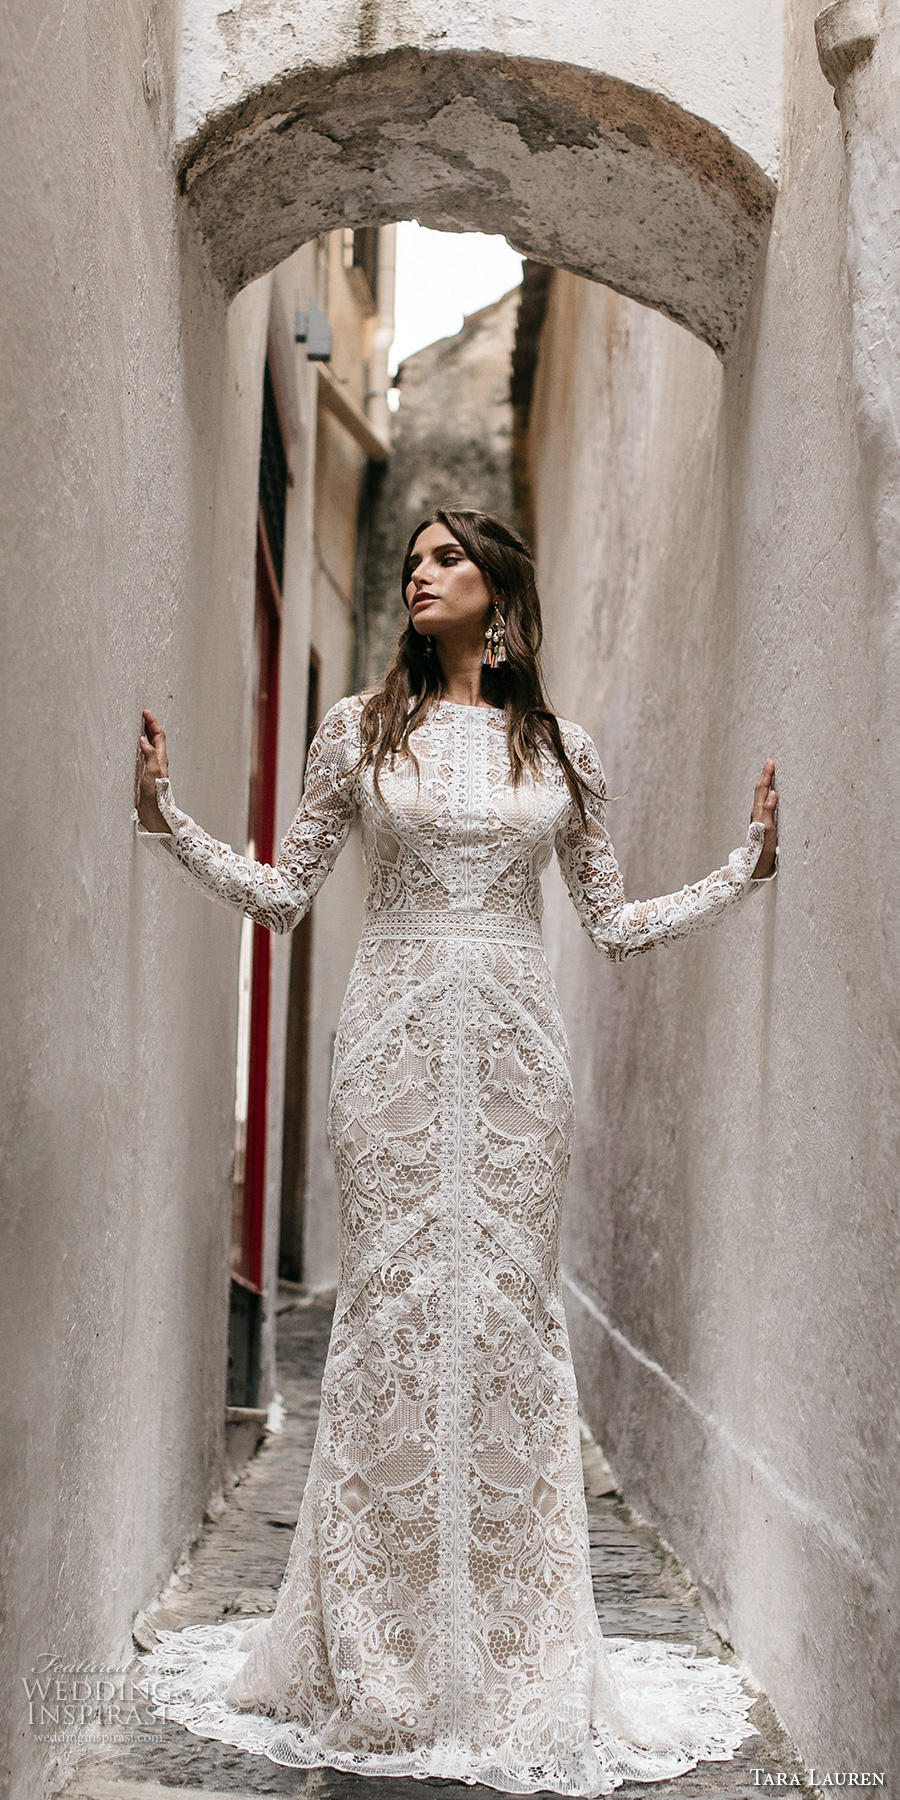 tara lauren spring 2017 bridal long sleeves jewel neck full embroidered elegant bohemian lace trumpet sheath wedding dress keyhole back short train (felix) mv